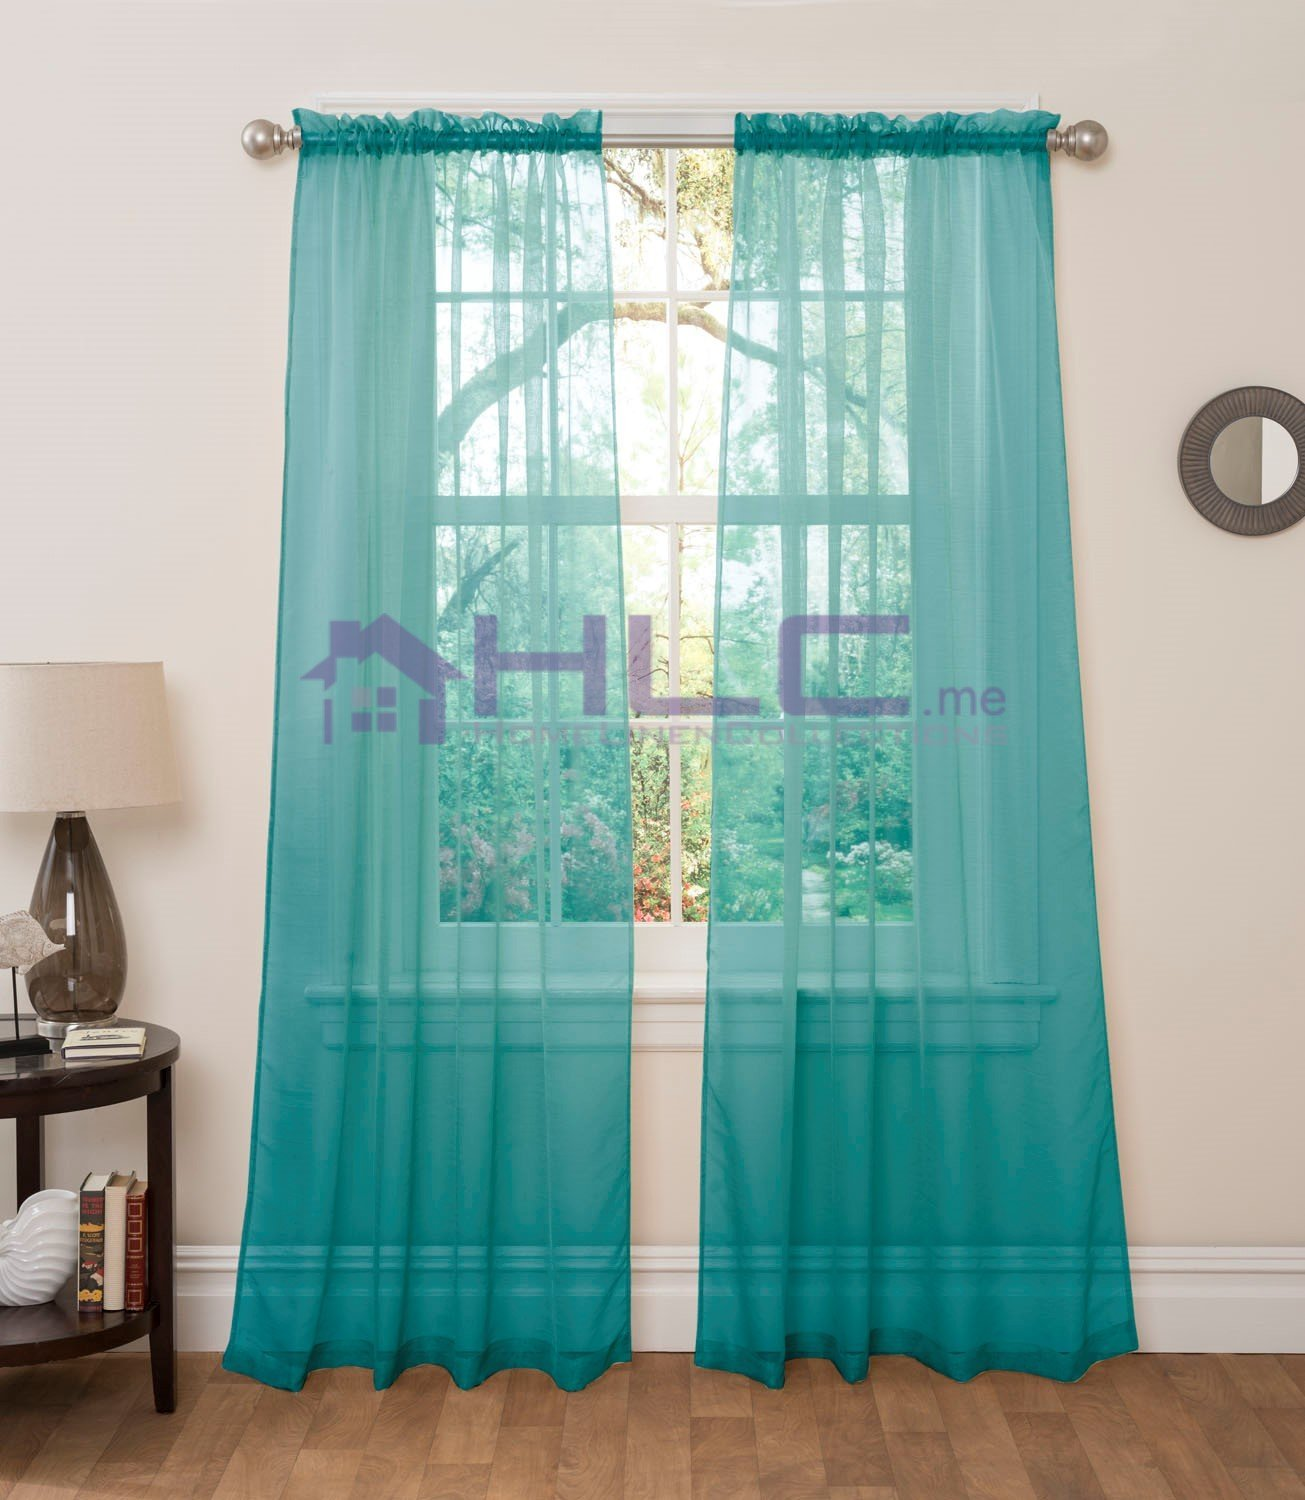 eyelet with itm curtain blue curtains swag swags pelmet sheer panel valance teal beaded drapes blockout